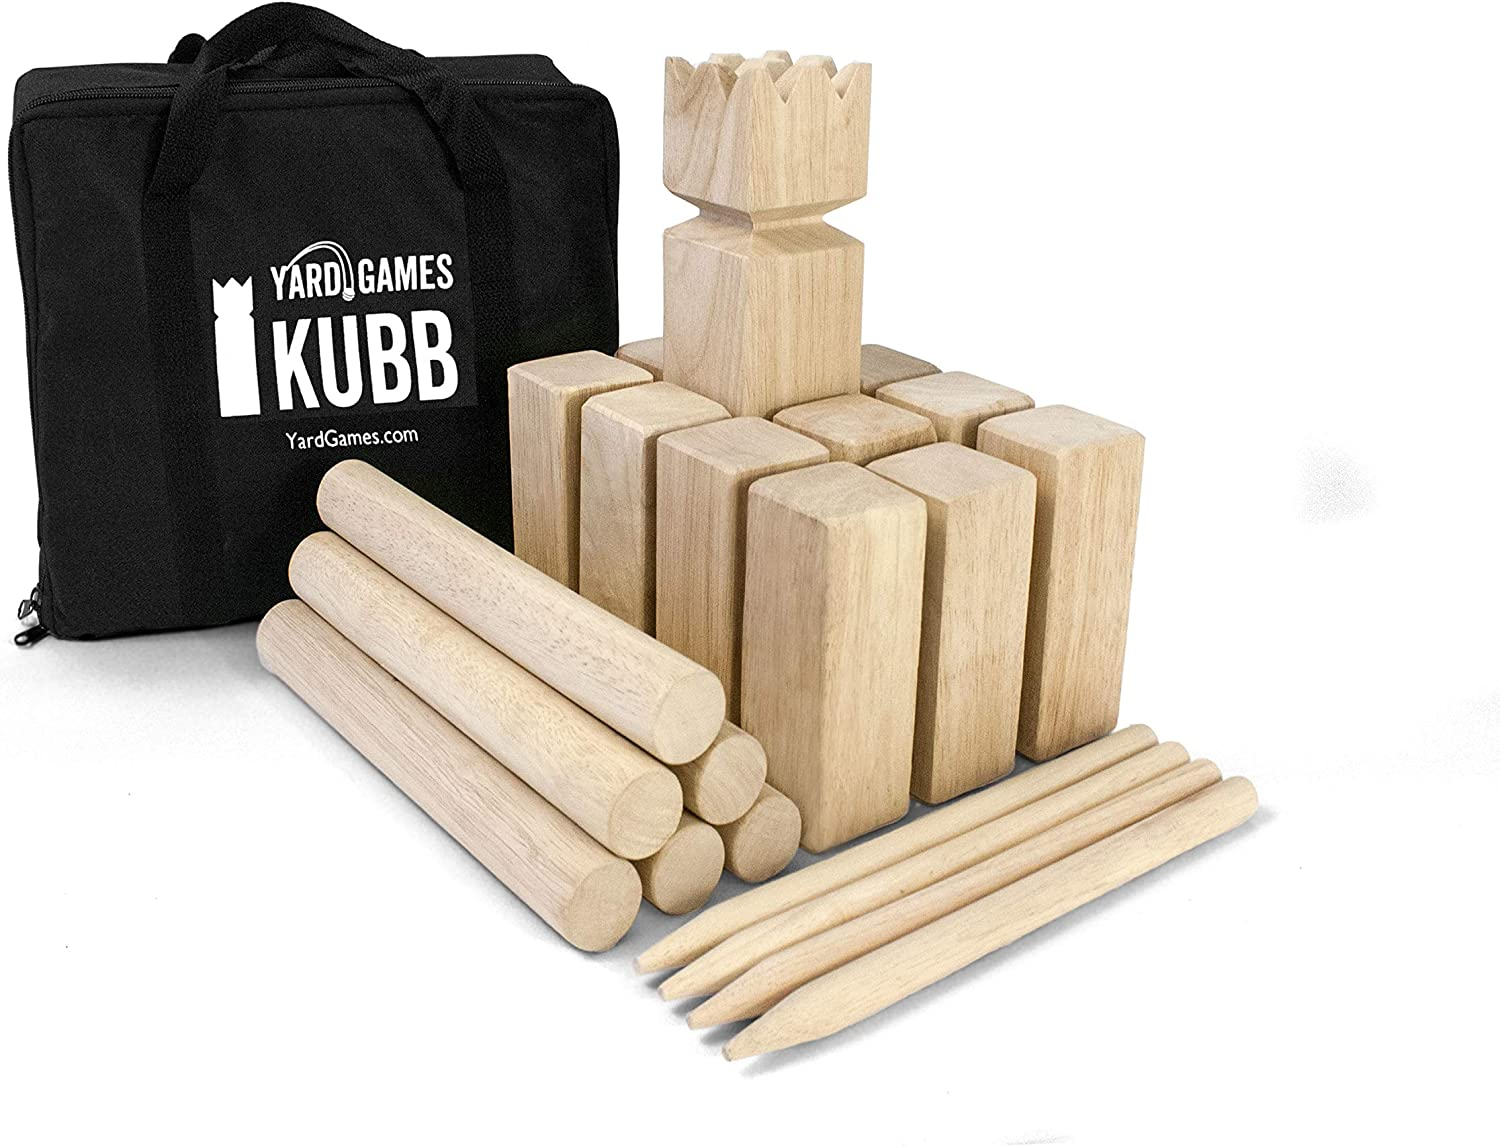 The Beach Lawn Outdoor Yard Tossing Family Game Viking Chess Clash Toss Yard Games with Carrying Bag for Outside Party Backyards Juegoal Kubb Backyard Game Set